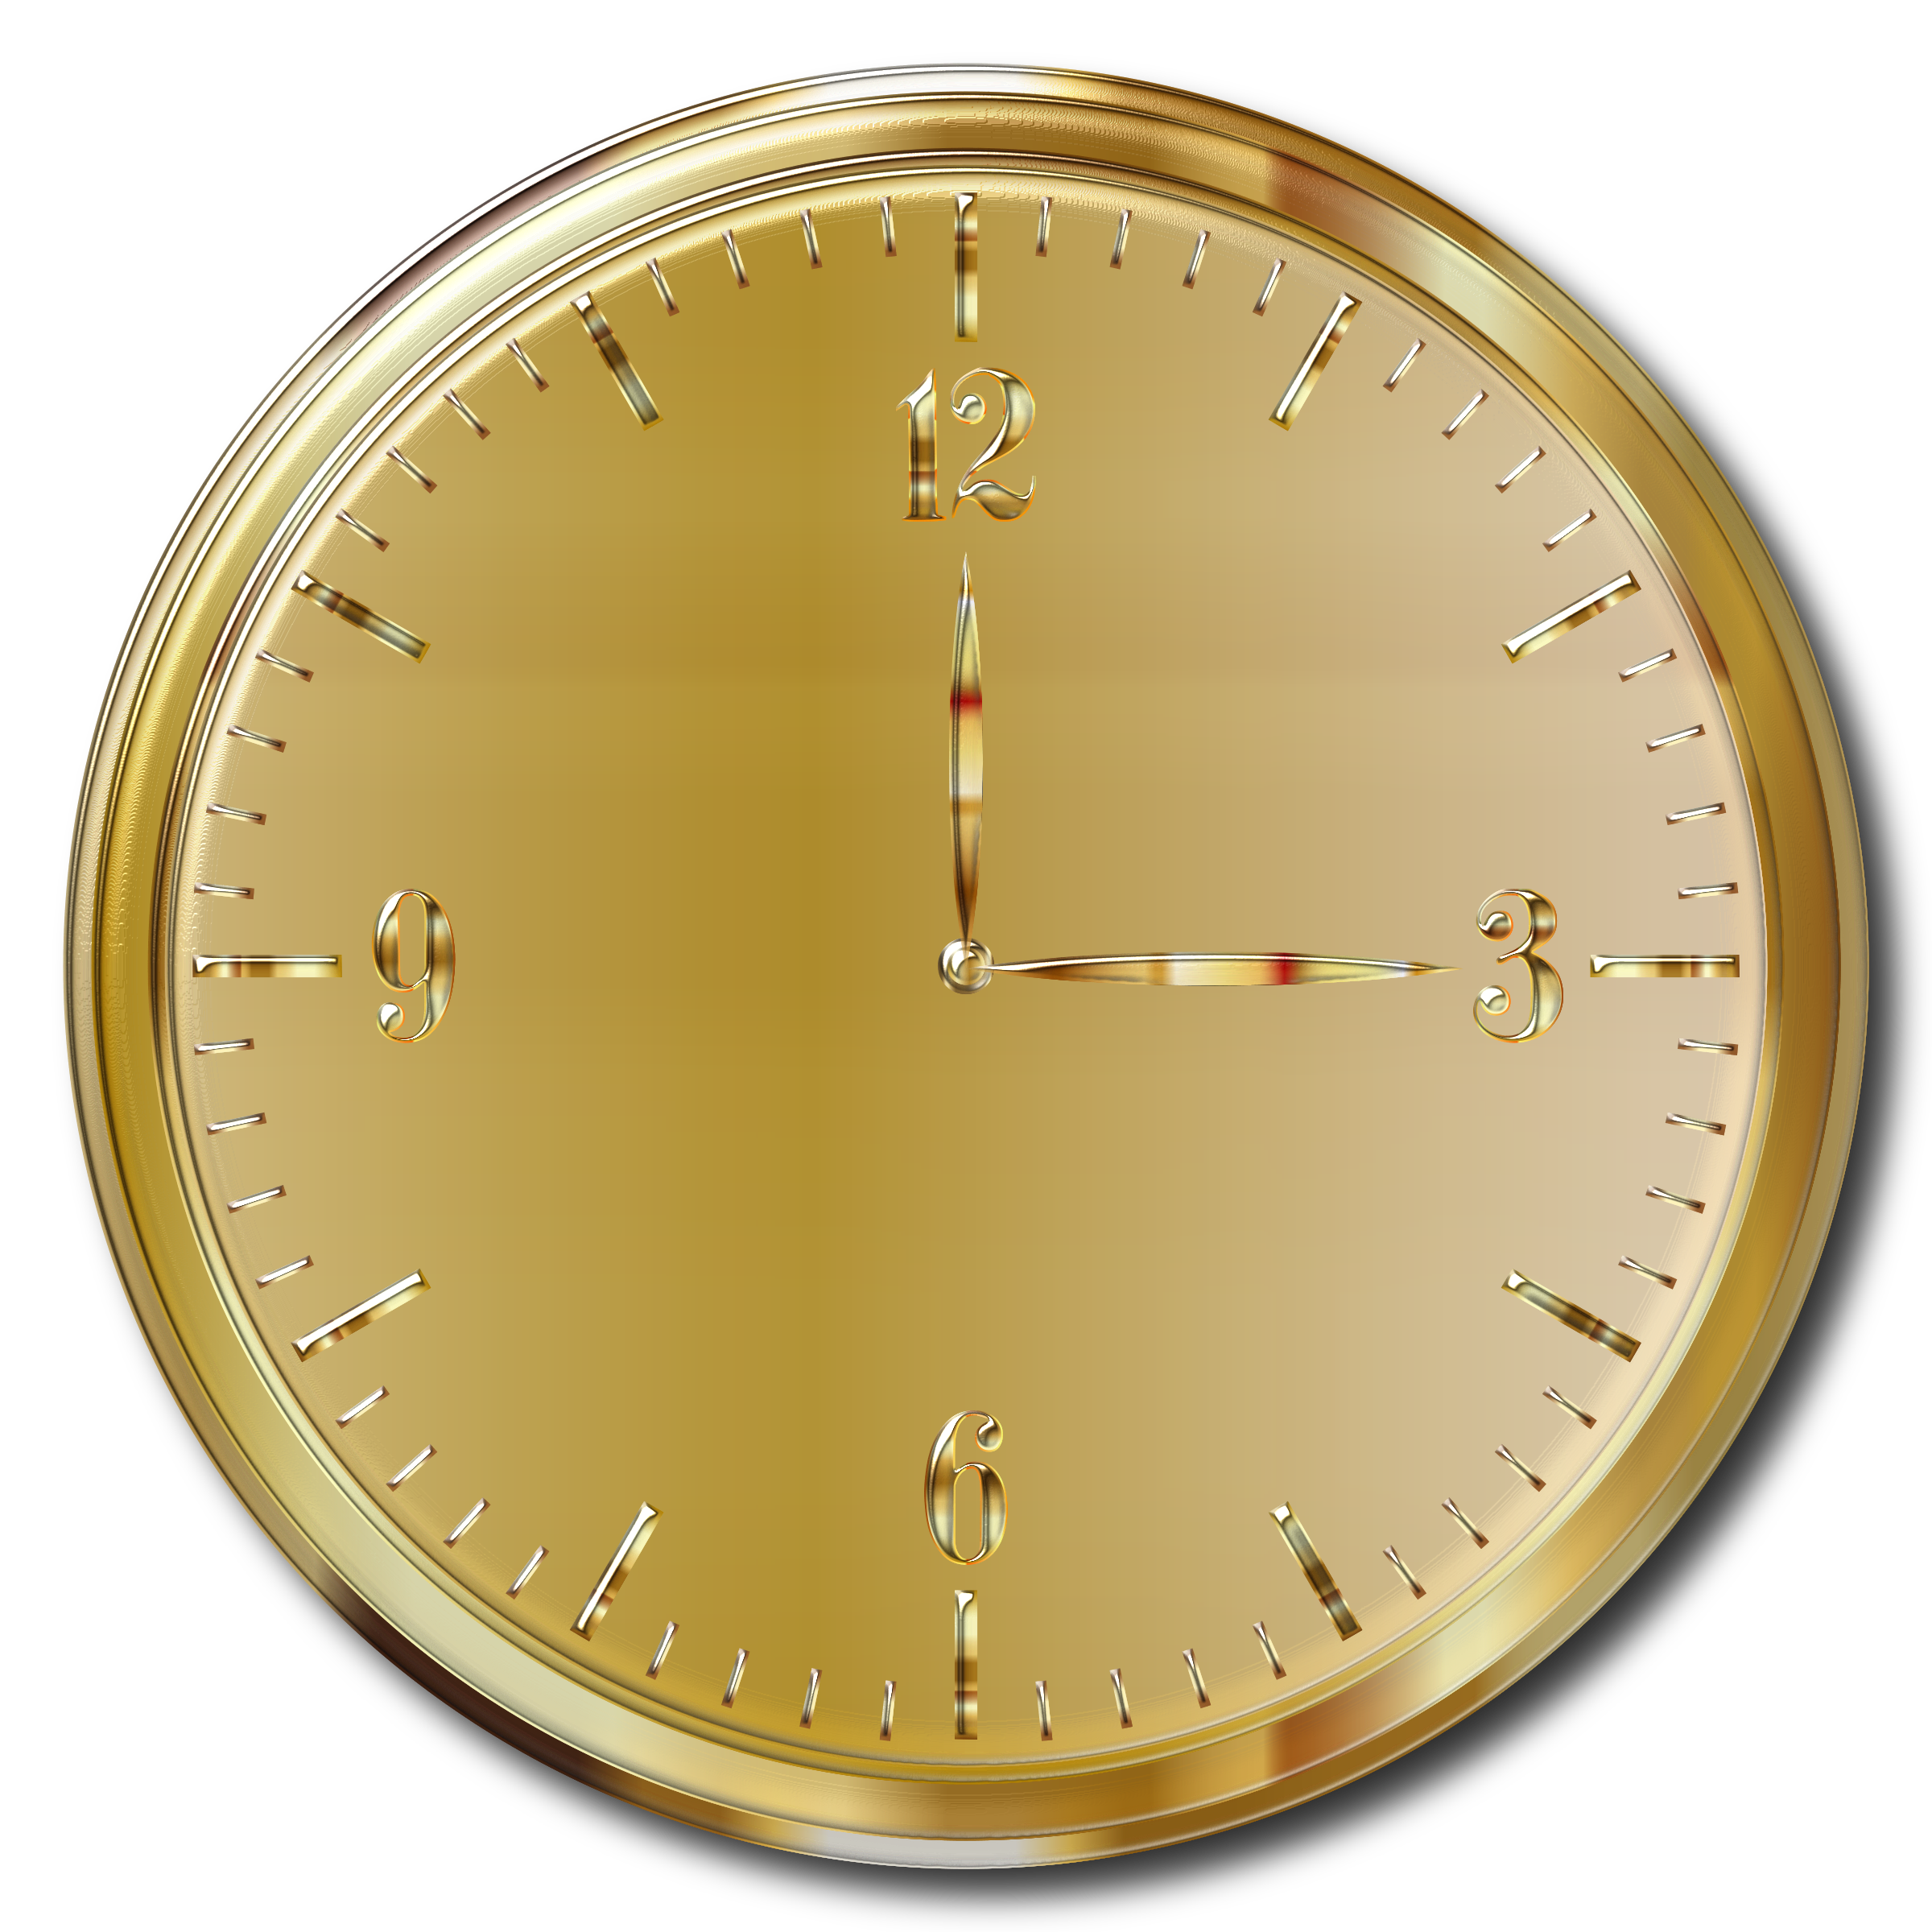 Gold Clock Enhanced With Drop Shadow by GDJ